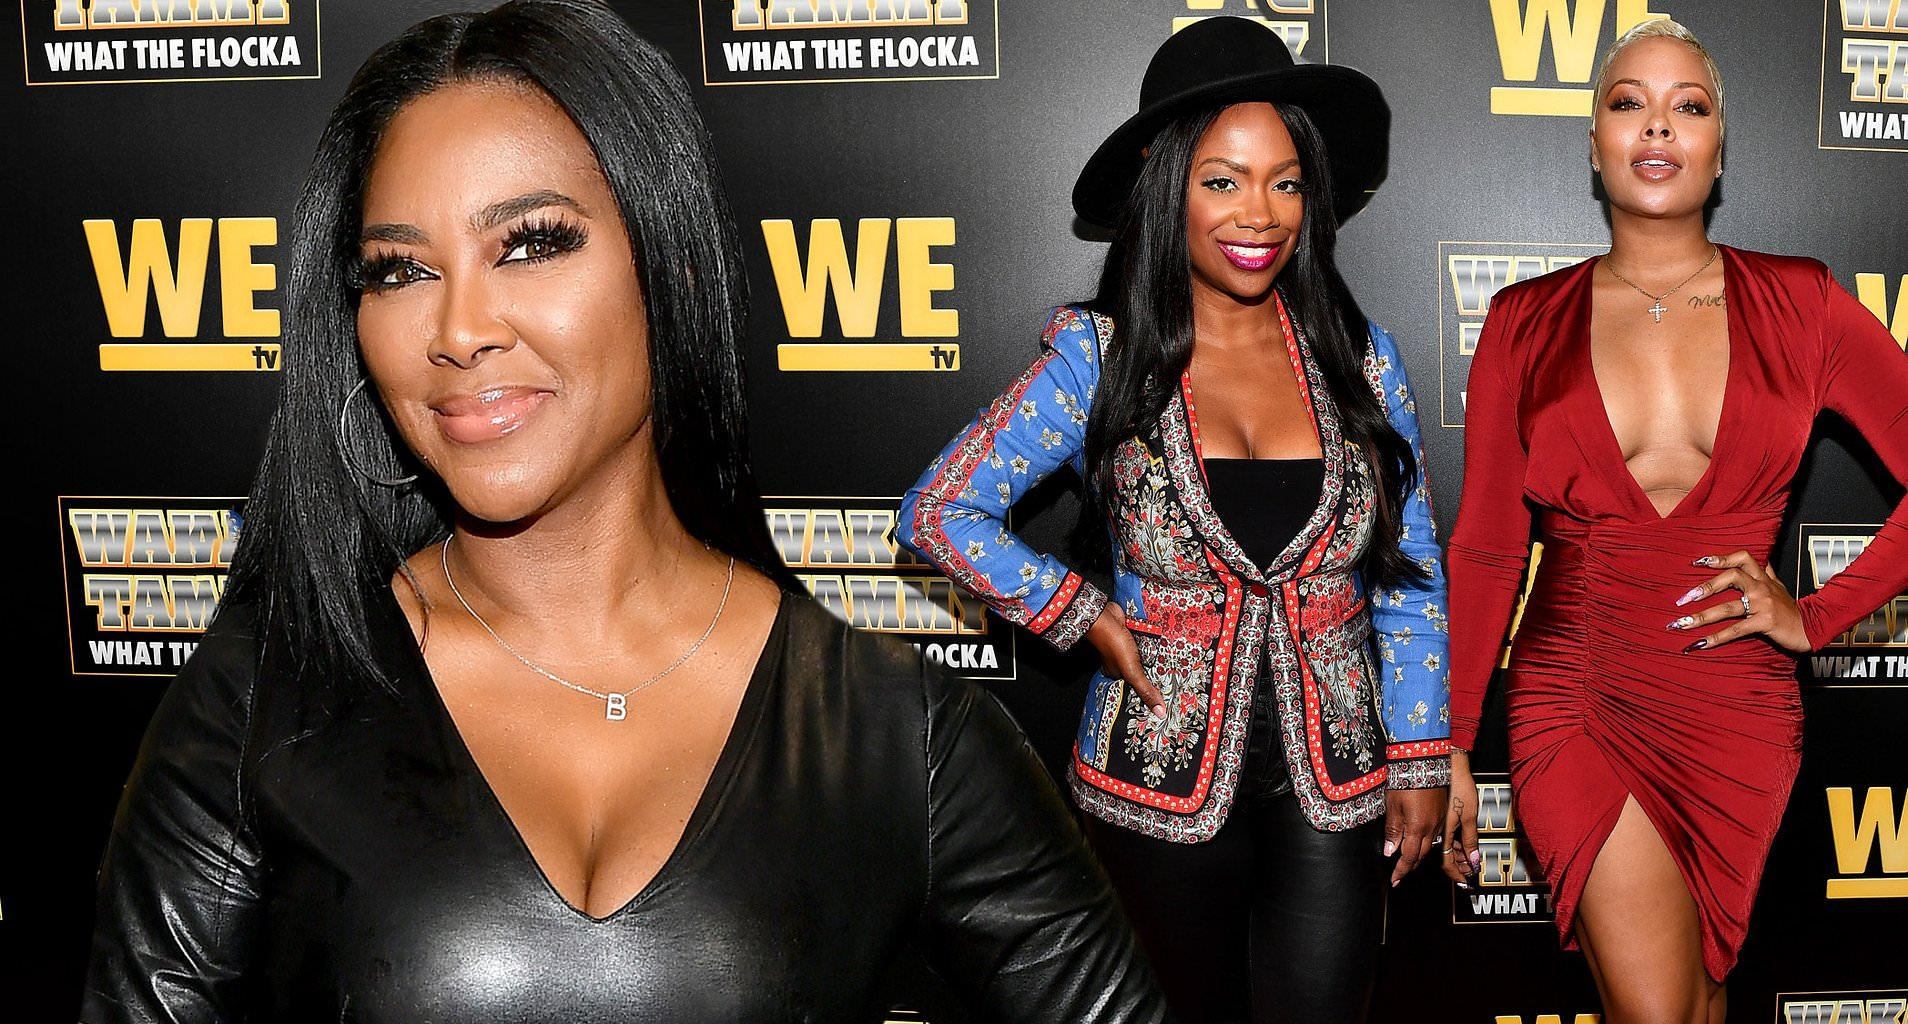 Kenya Moore Celebrates The Juneteenth With Kandi Burruss And Eva Marcille - See The Photos From The Festive Event